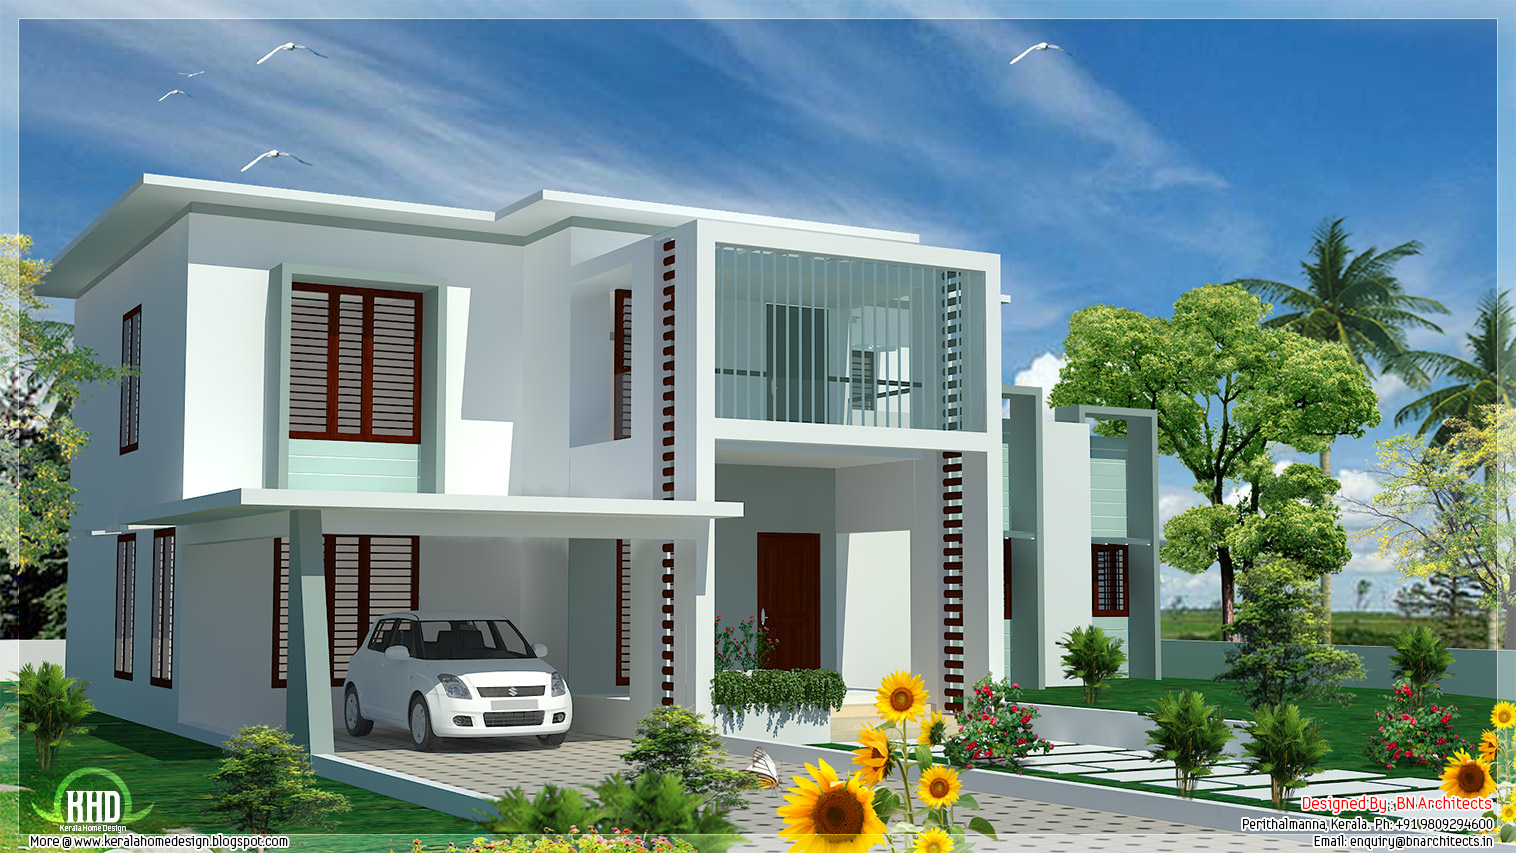 4 bedroom modern flat roof house kerala home design and for Home plans architect